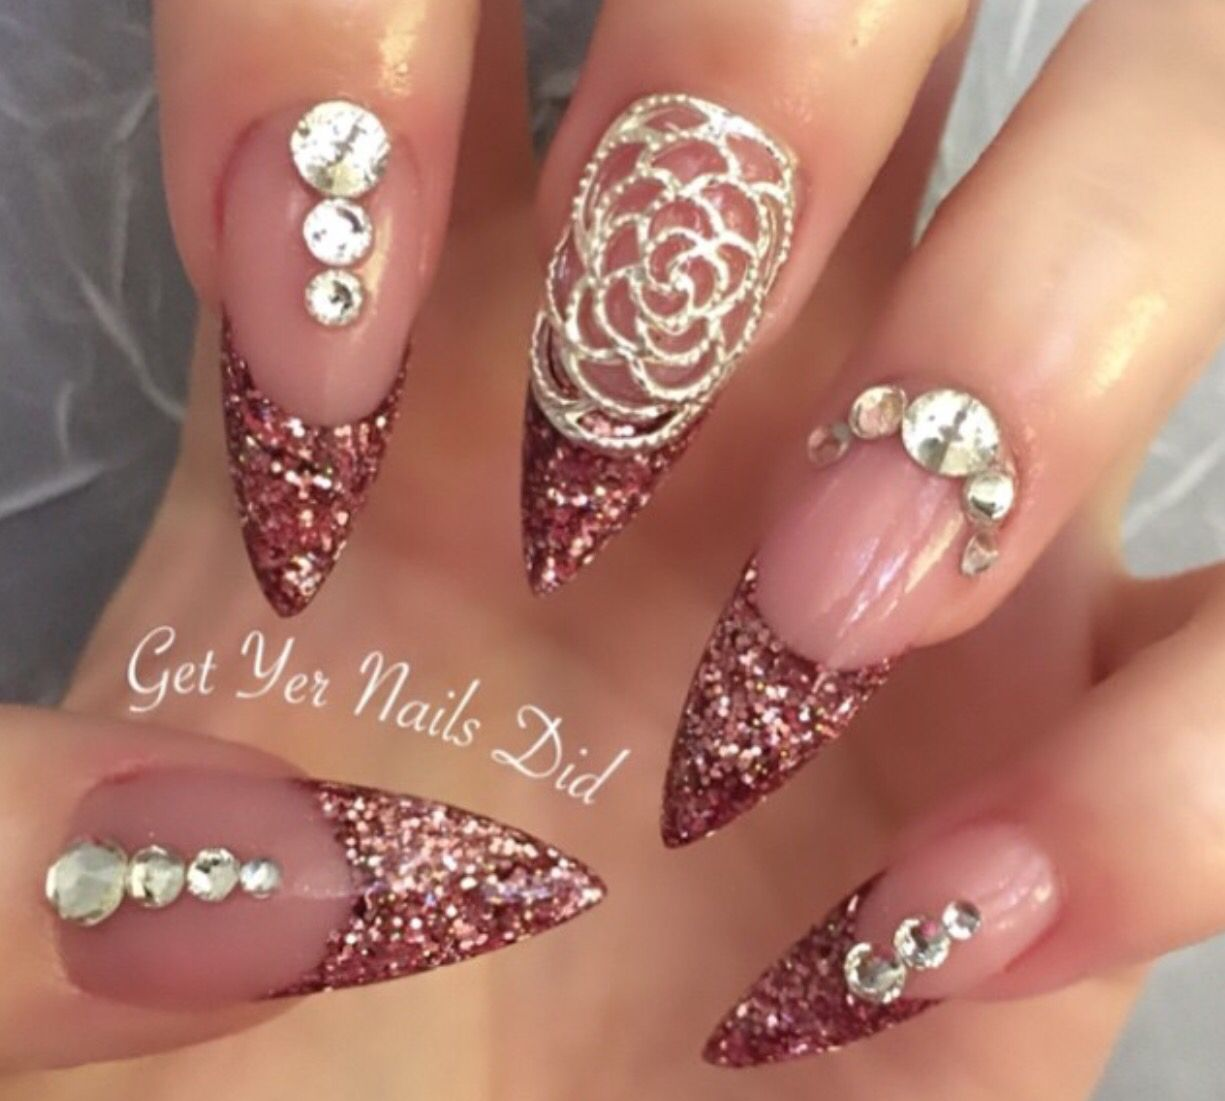 Pin by ✨Empress Esh✨ on ~PRETTY FINGERS & PRETTY TOES~   Pinterest ...